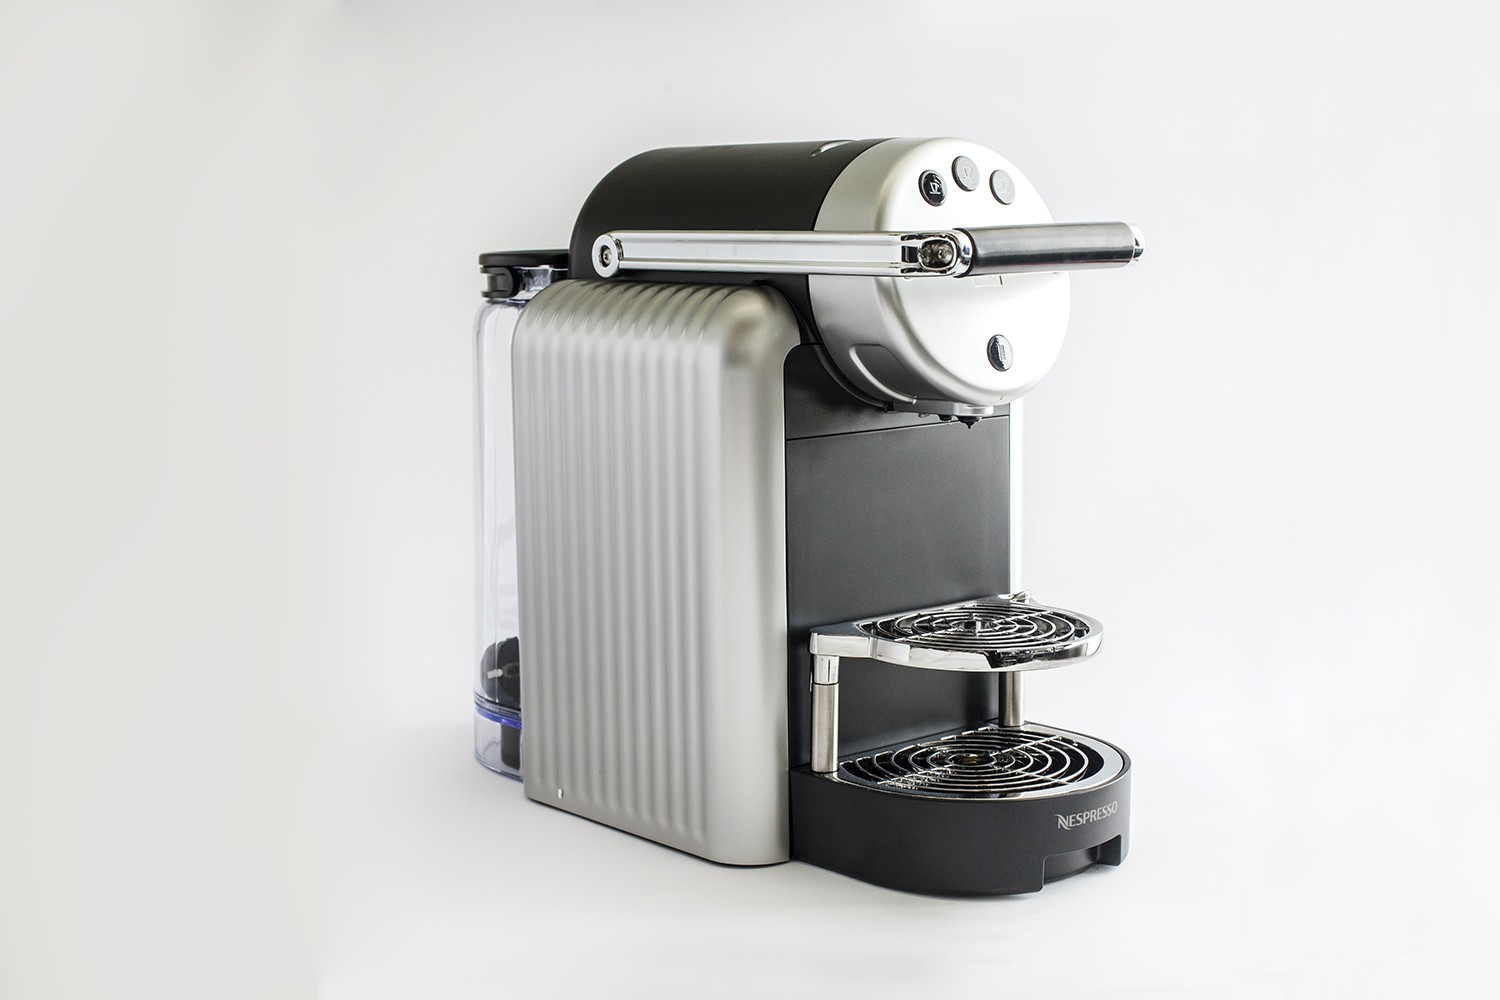 Electronic Coffee Day Coffee Machine rental material arts catering nespresso coffee machine individual 4 days